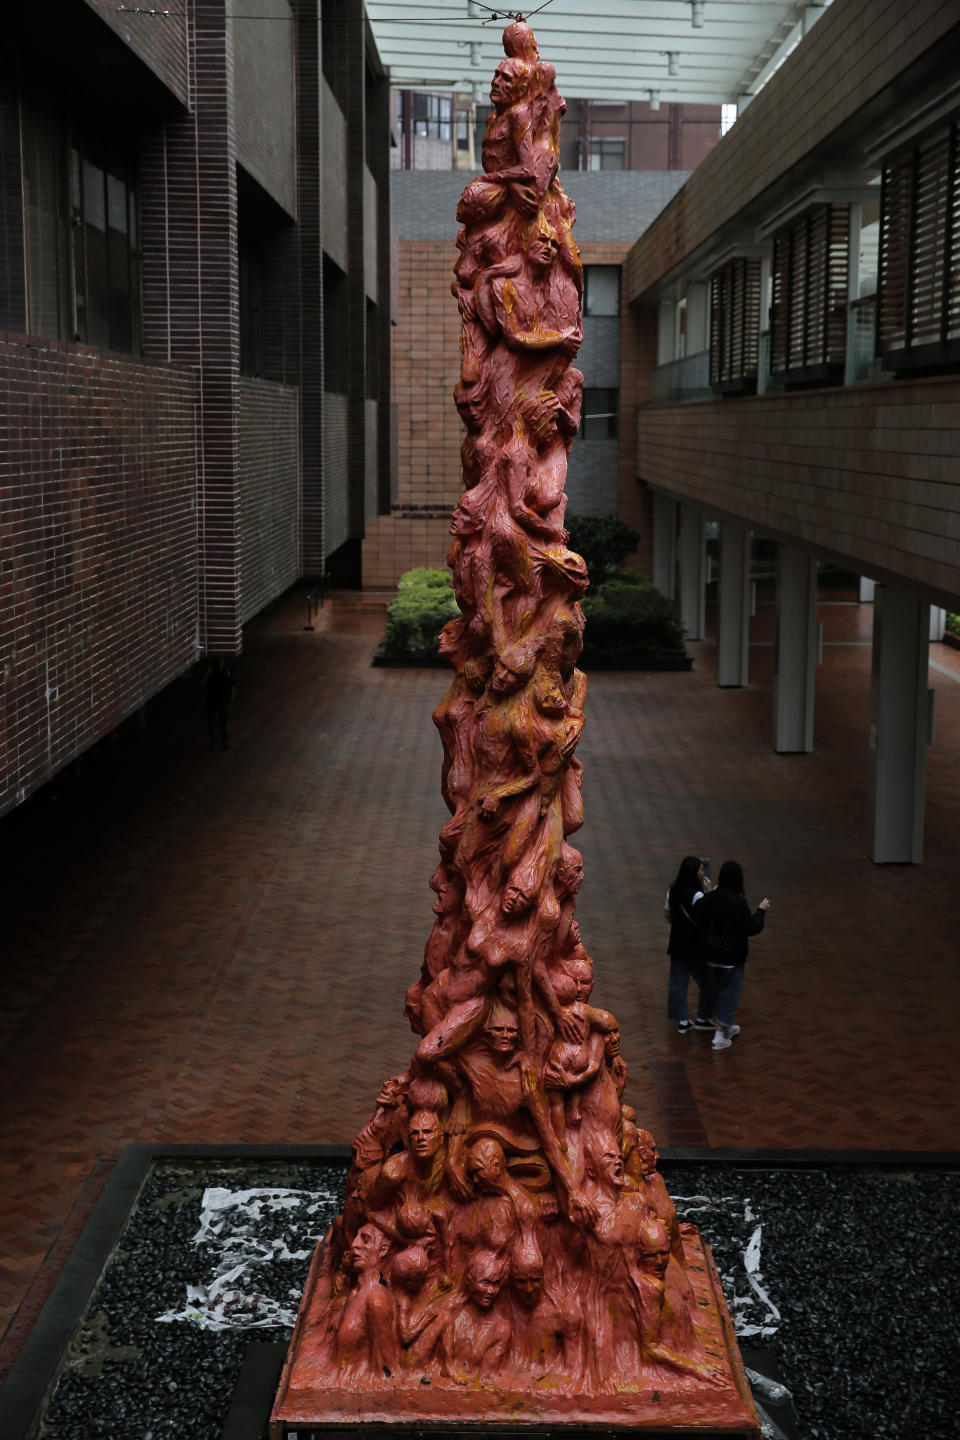 """FILE - In this May 5, 2019, file photo, the """"Pillar of Shame"""" statue, a memorial for those killed in the 1989 Tiananmen crackdown, is displayed at the University of Hong Kong. Danish artist Jens Galschioet is seeking to get back his sculpture in Hong Kong memorializing the victims of China's 1989 Tiananmen Square crackdown as a deadline loomed for its removal Wednesday, Oct. 13, 2021. (AP Photo/Vincent Yu, File)"""